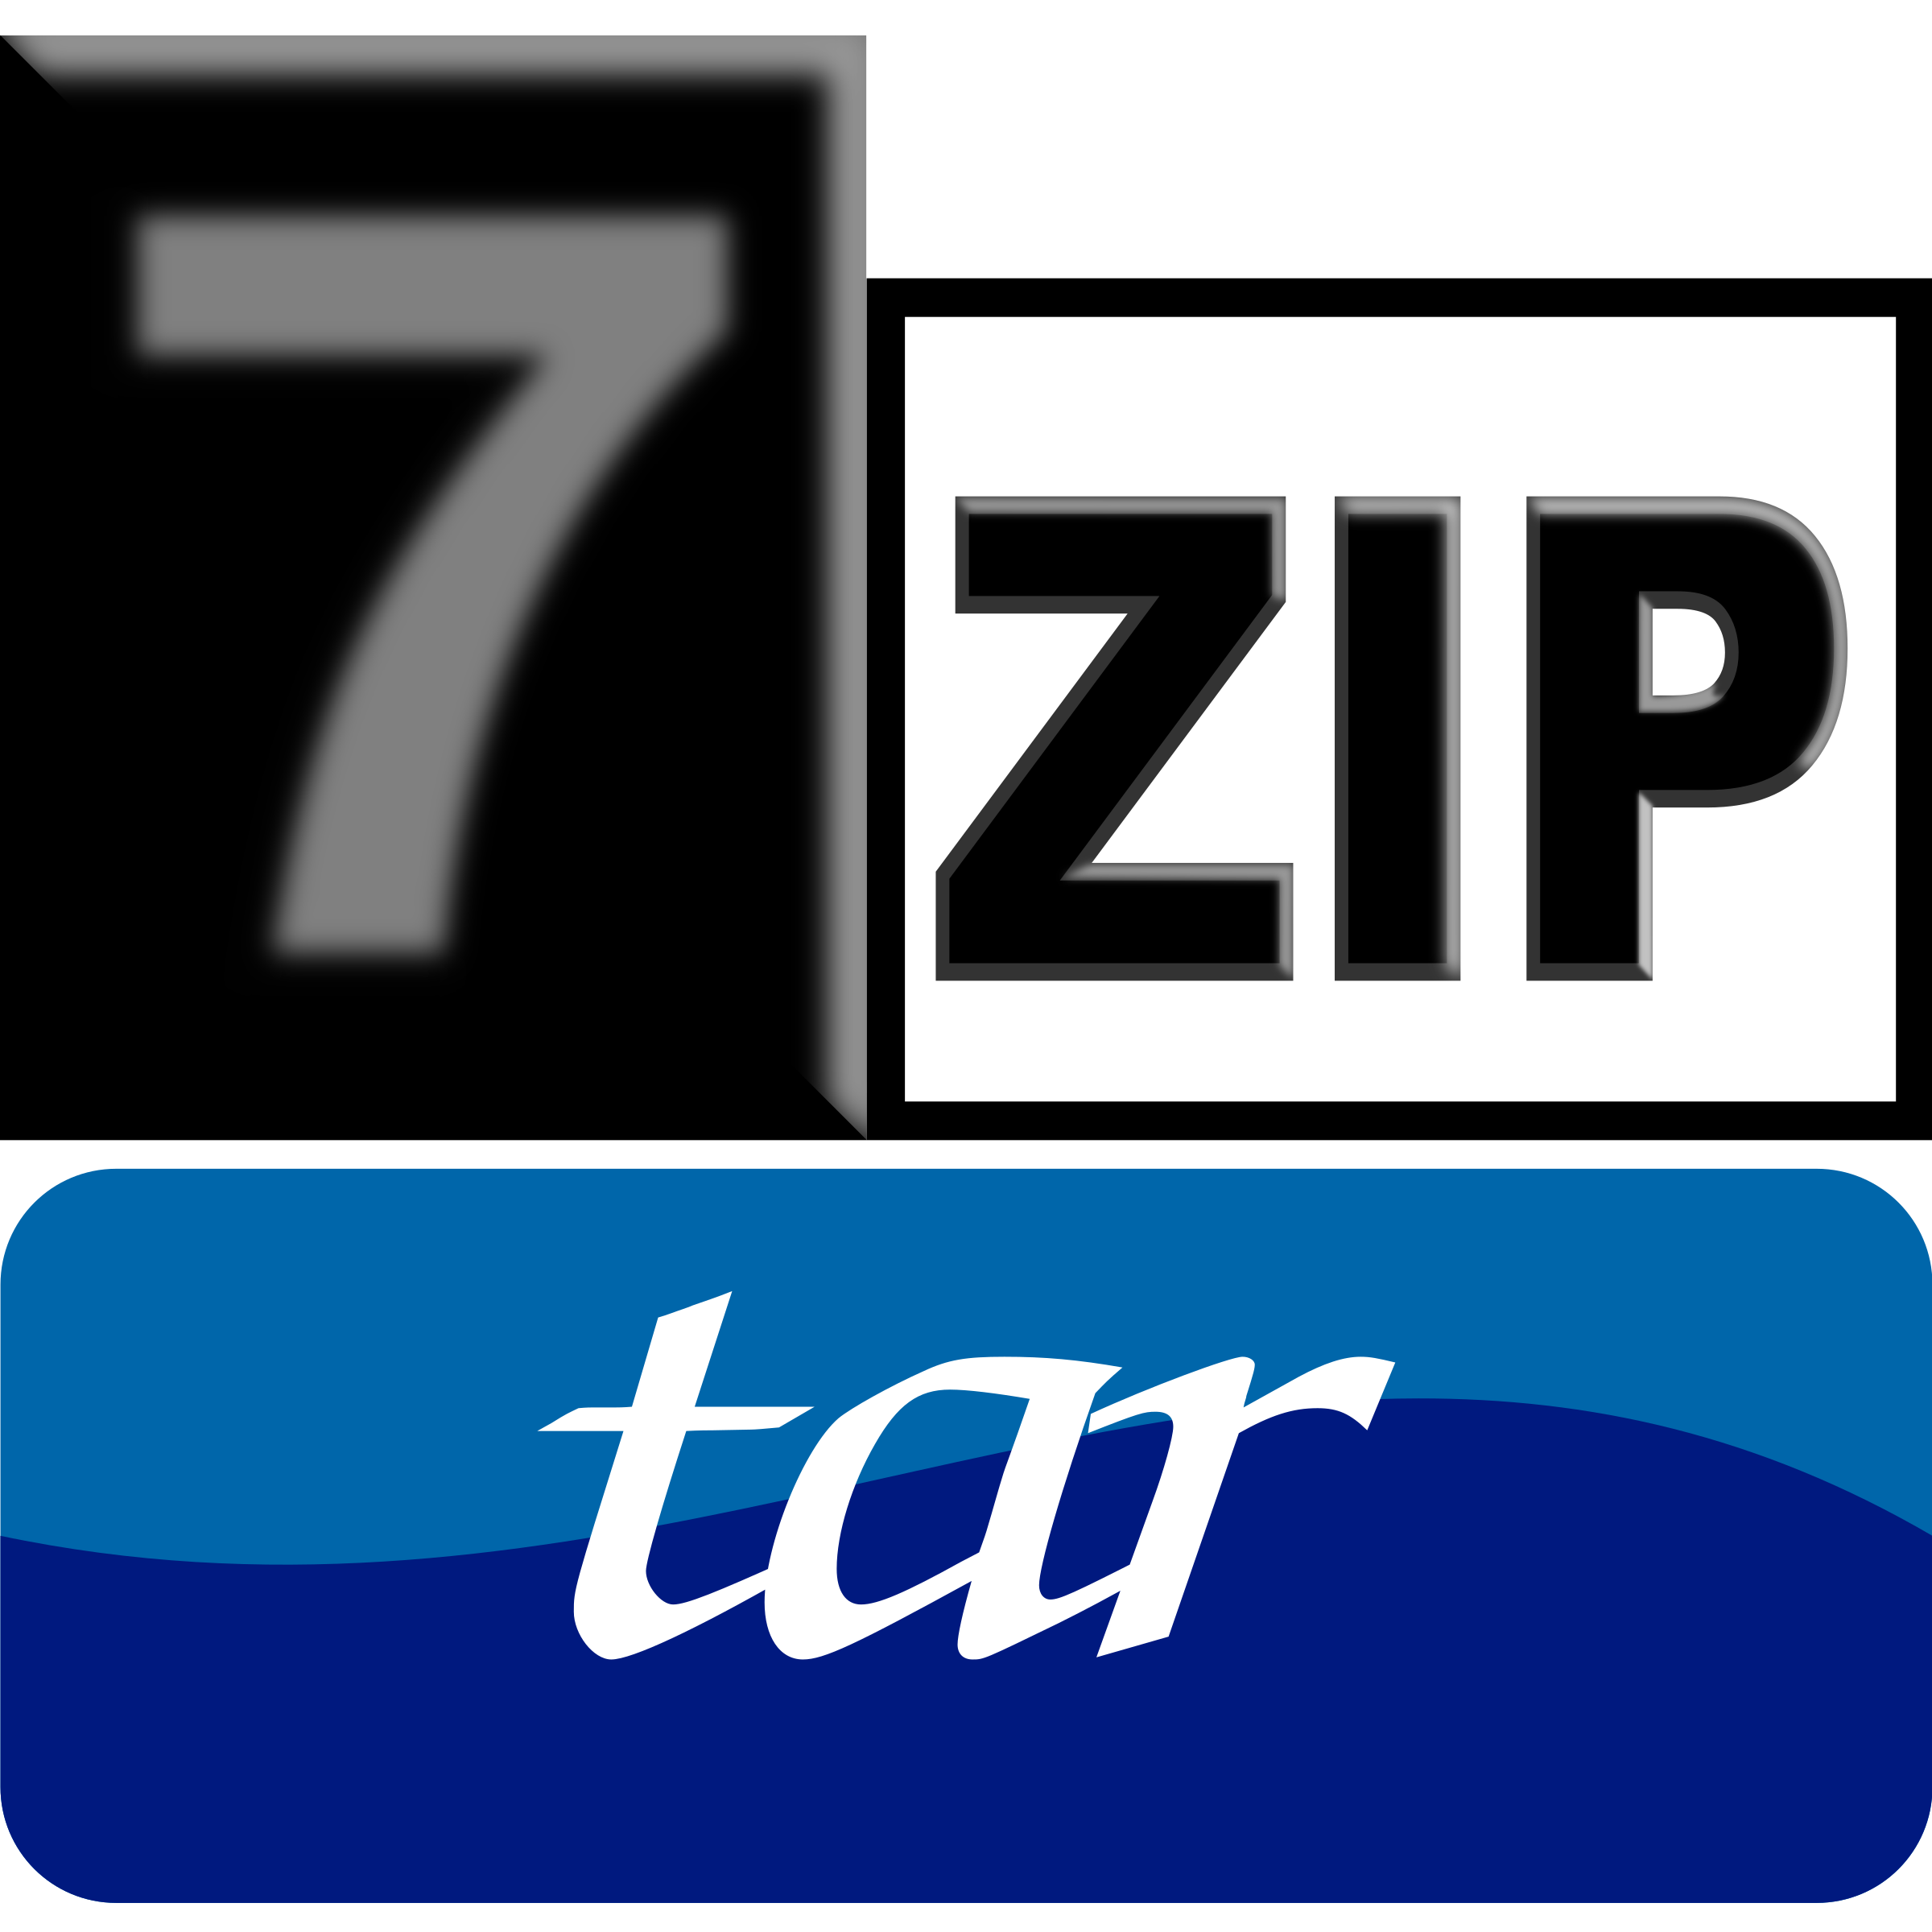 7zipClassic-tar by kg